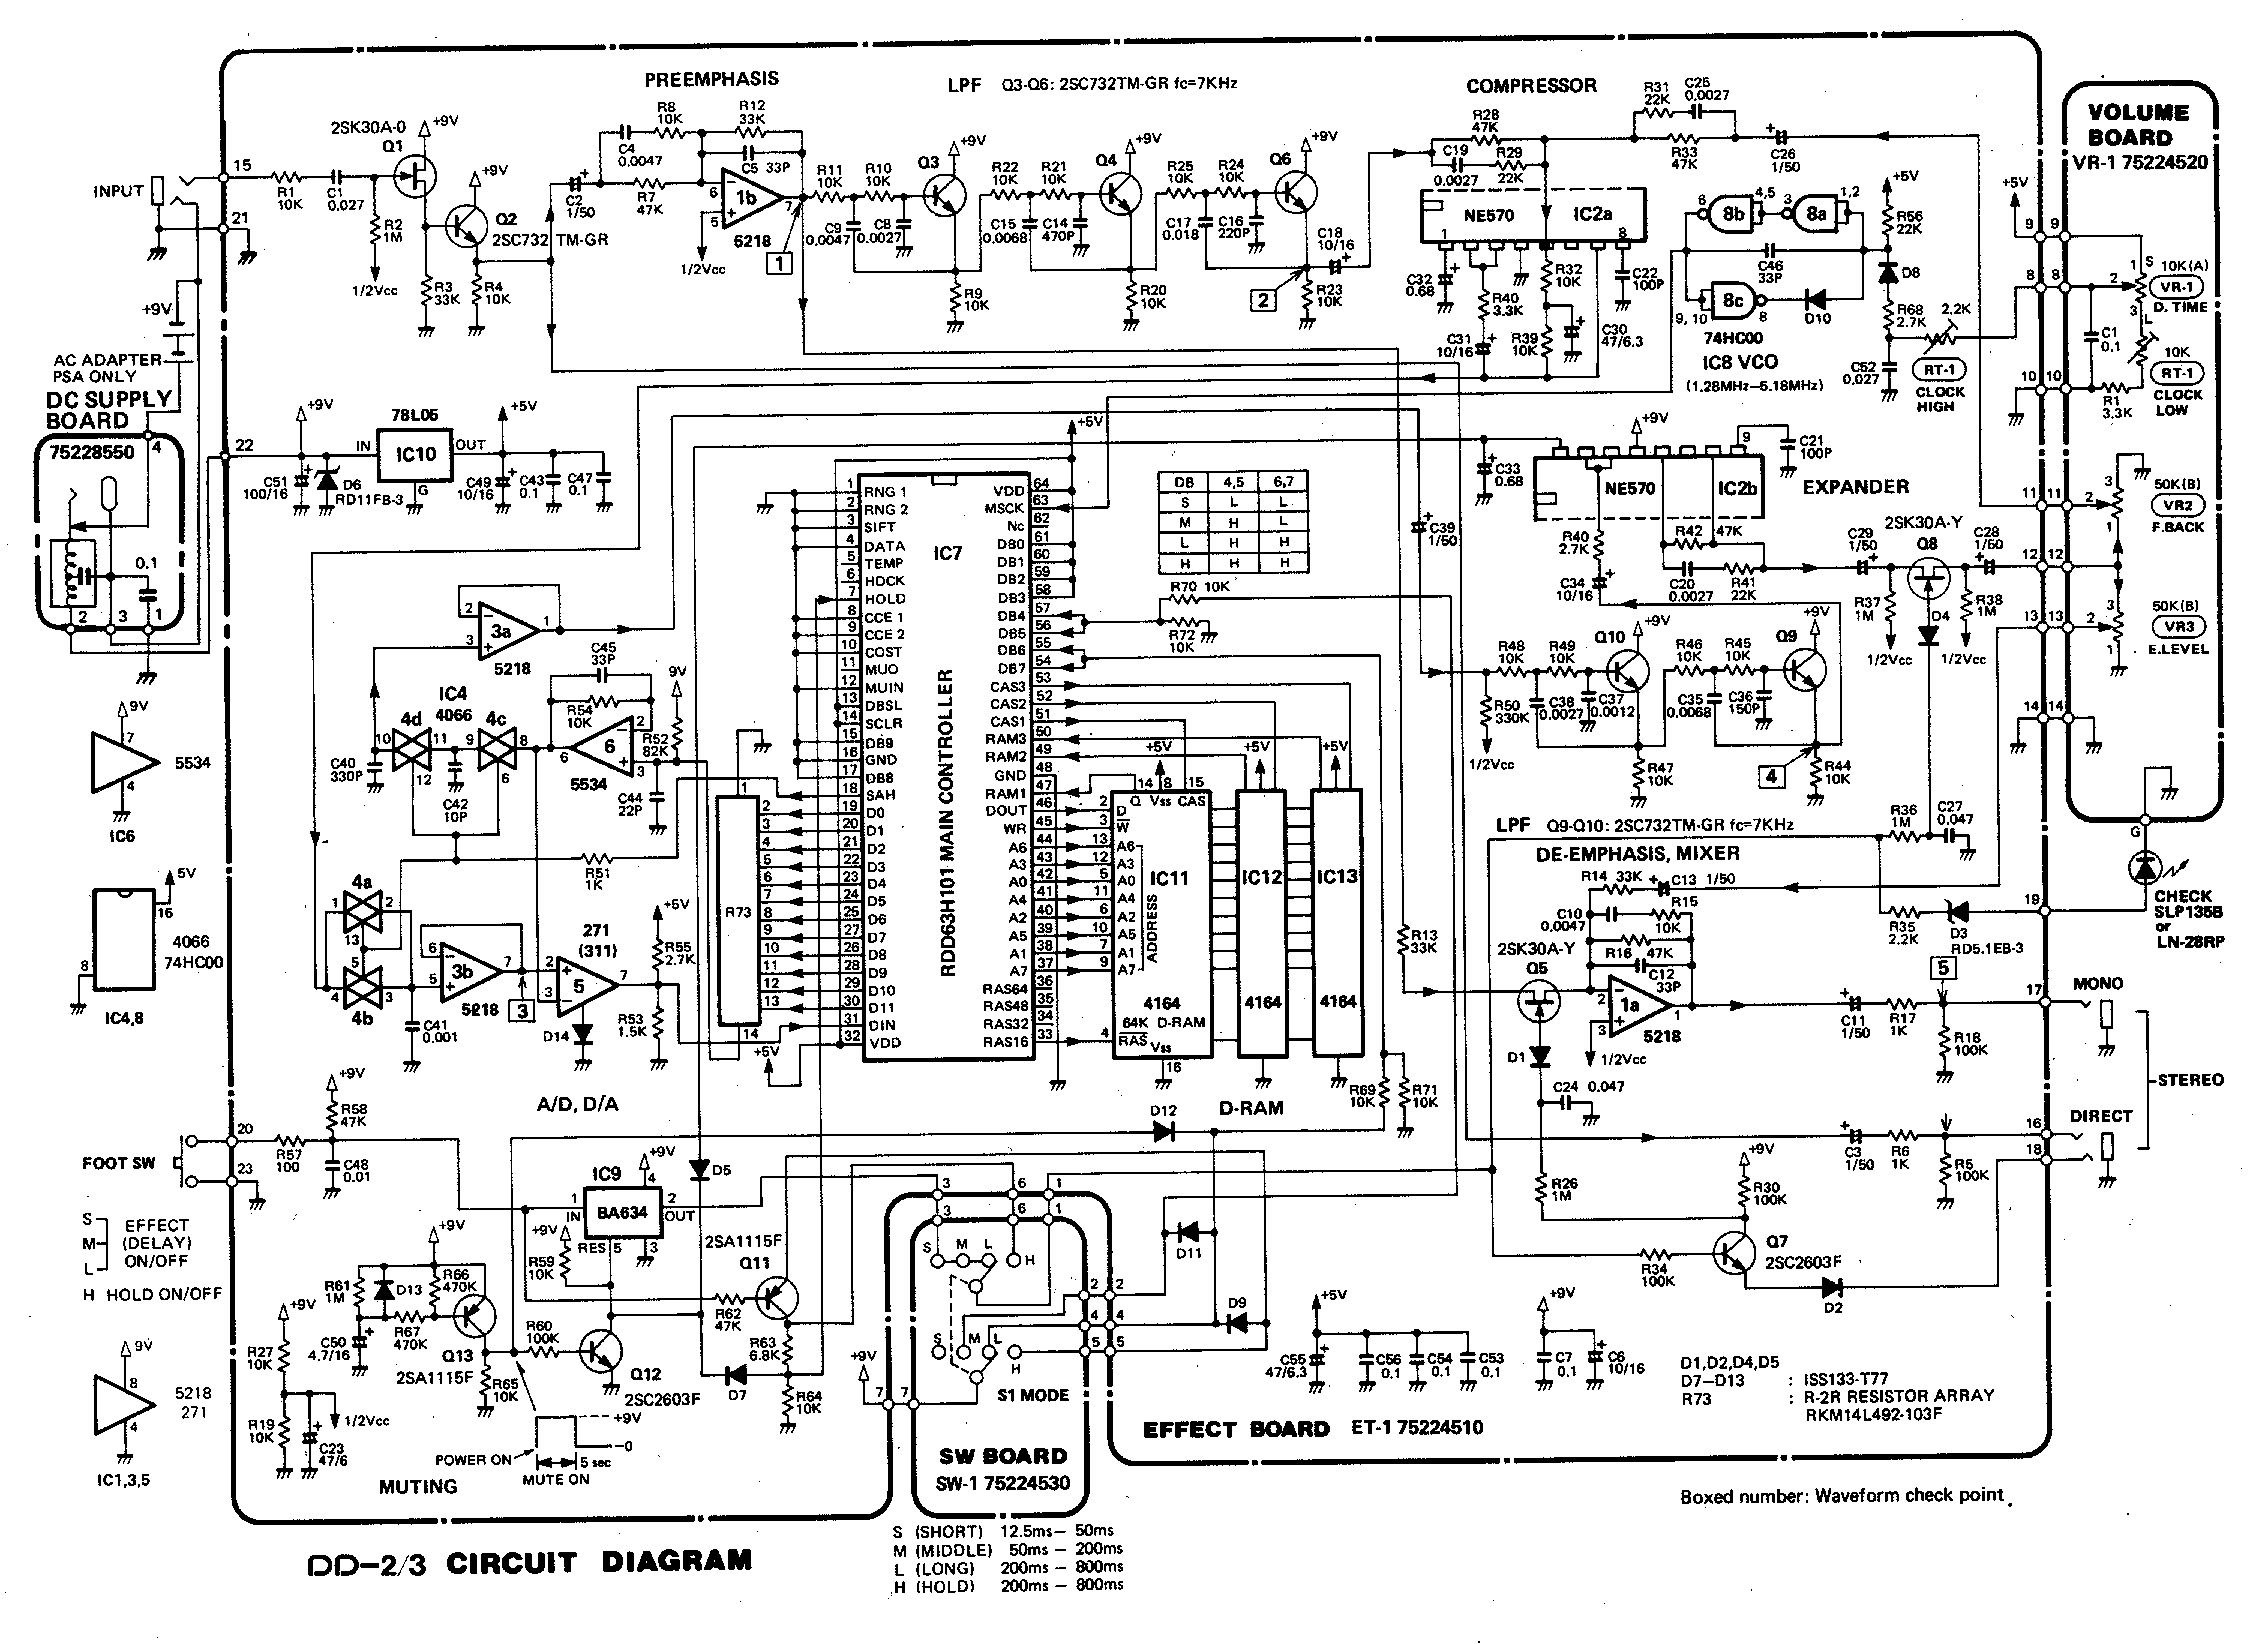 wiring diagram for epiphone with Boss 20dd 2 on 2 Wire Humbucker Wiring Diagrams Guitar Ibanez additionally Ibanez 20  20S540 S470 S370 gif together with 19387 The Fabulous Four Mods For Your Strat Tele Les Paul And Super Strat furthermore BOSS 20DD 2 in addition Showthread.